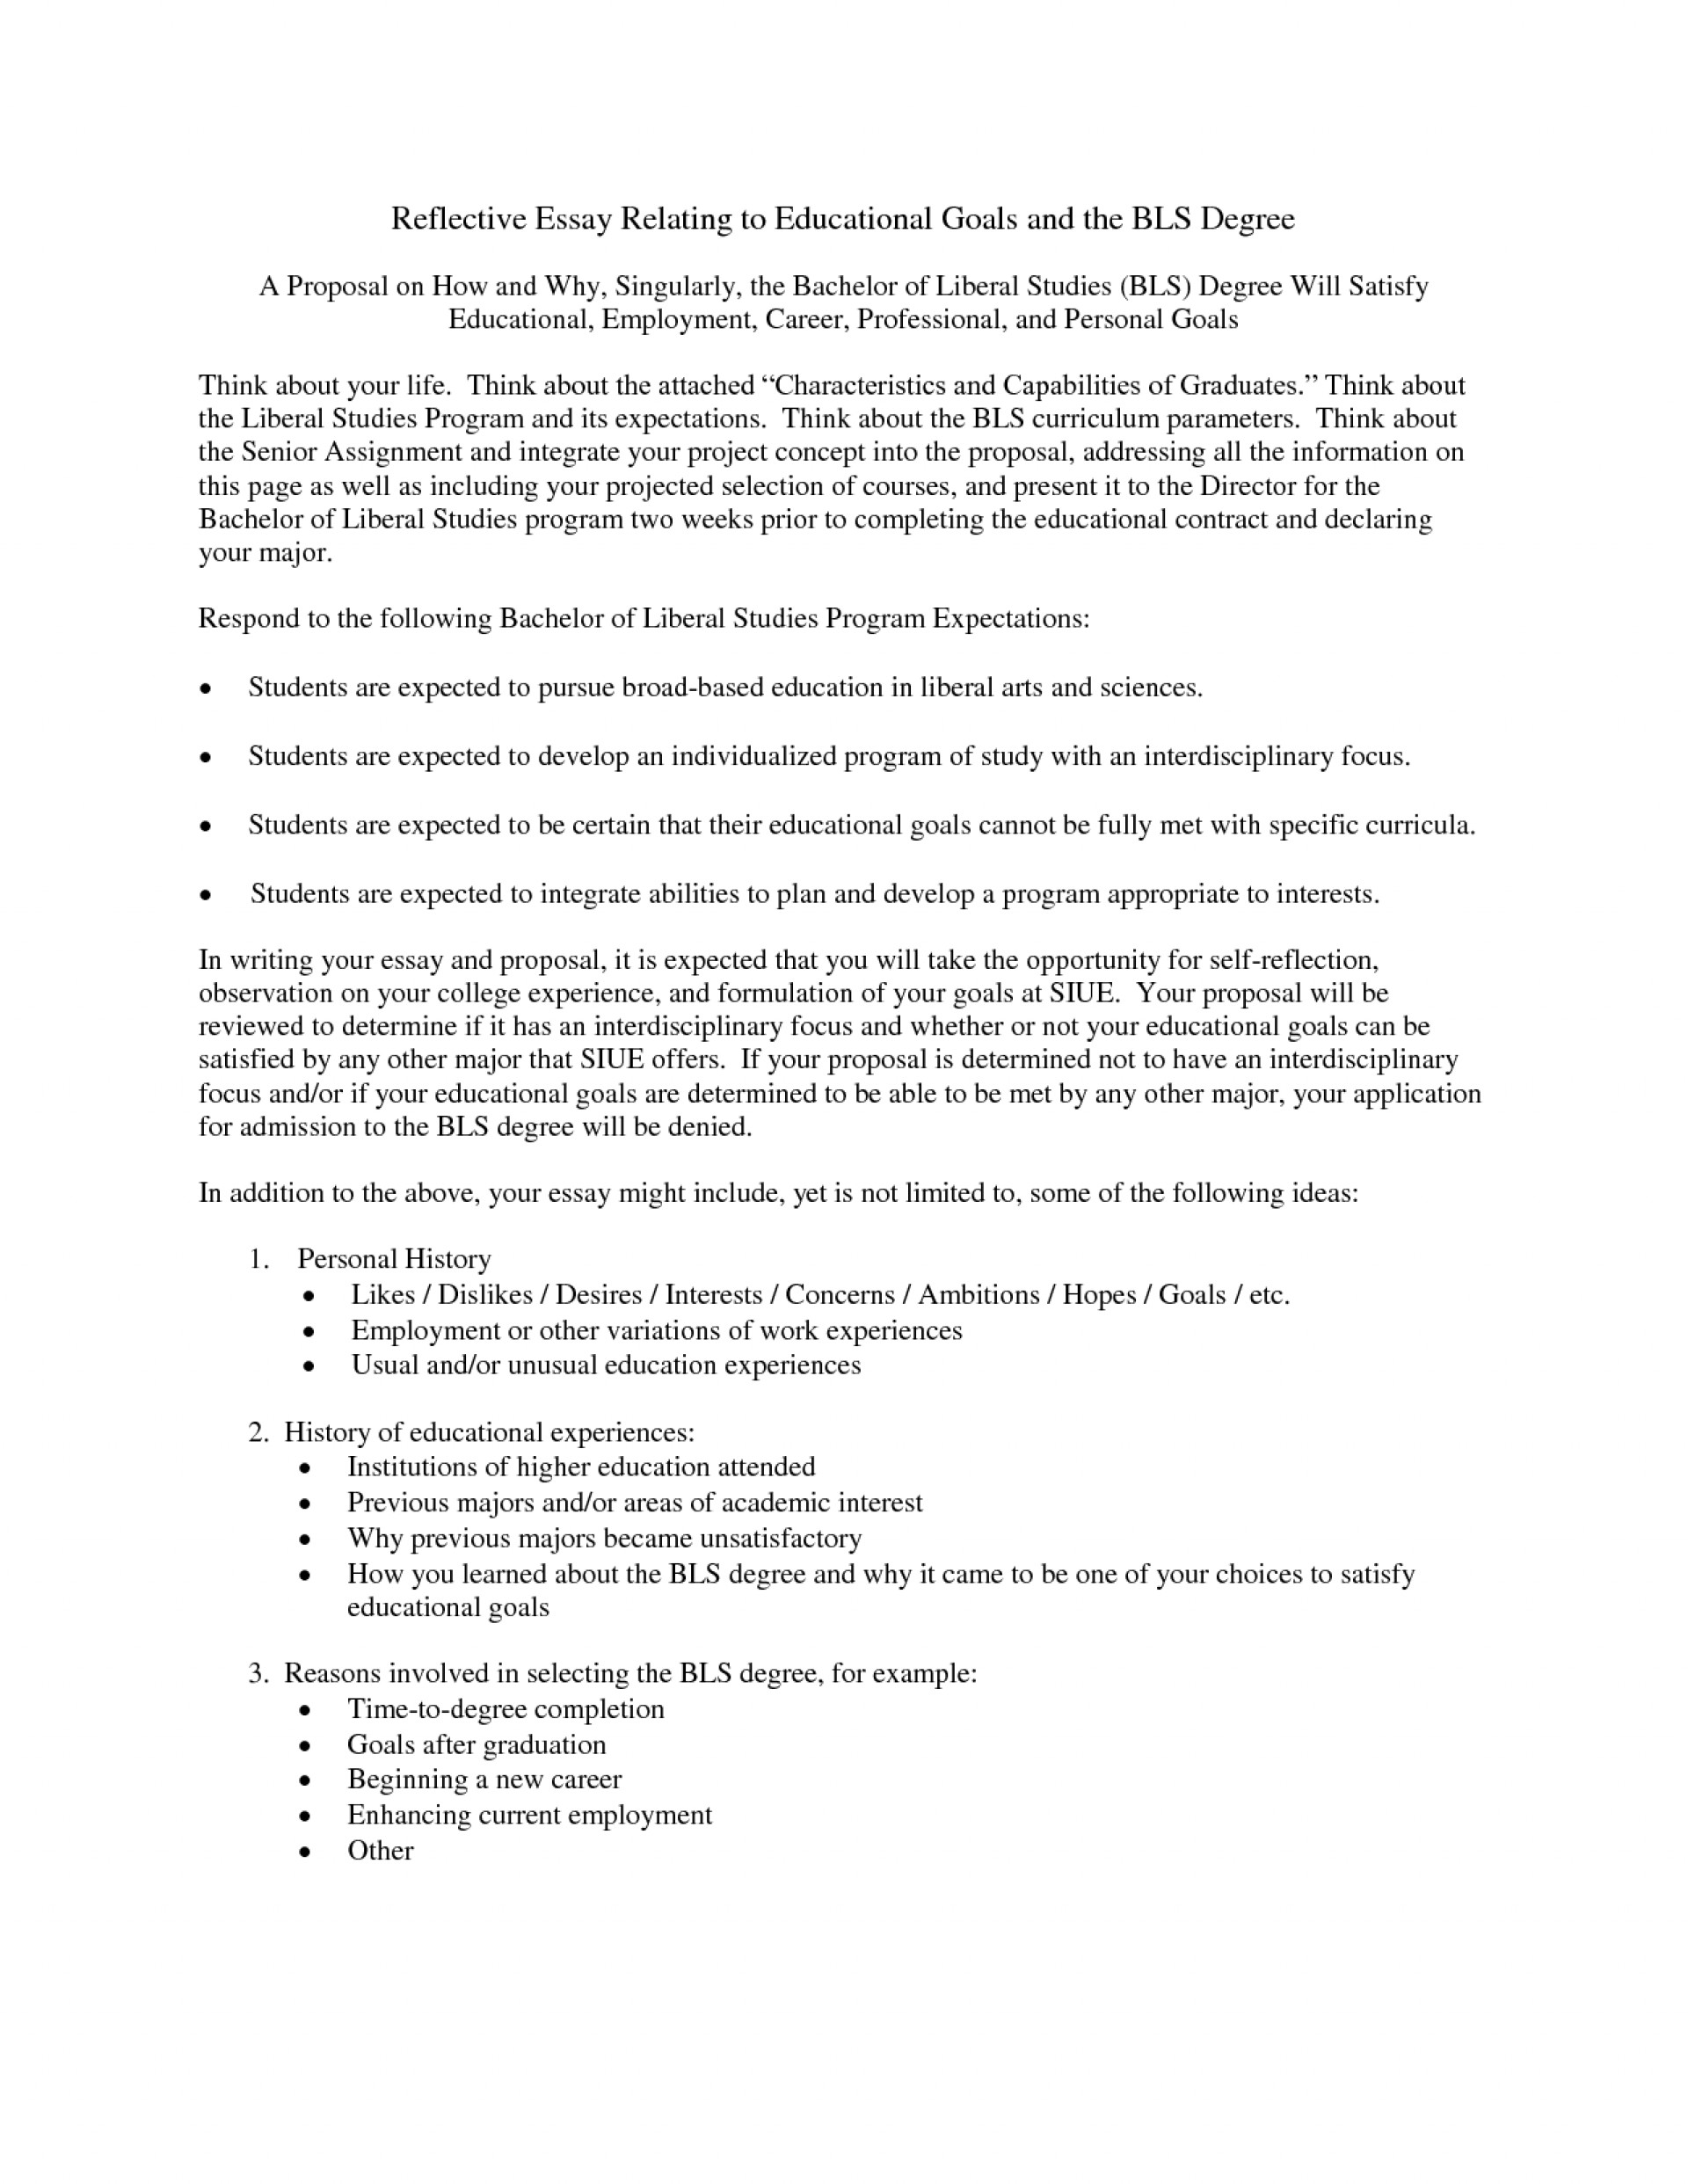 example of research paper on career choice educational and goals    example of research paper on career choice educational and goals  essay examples luxury goal essays